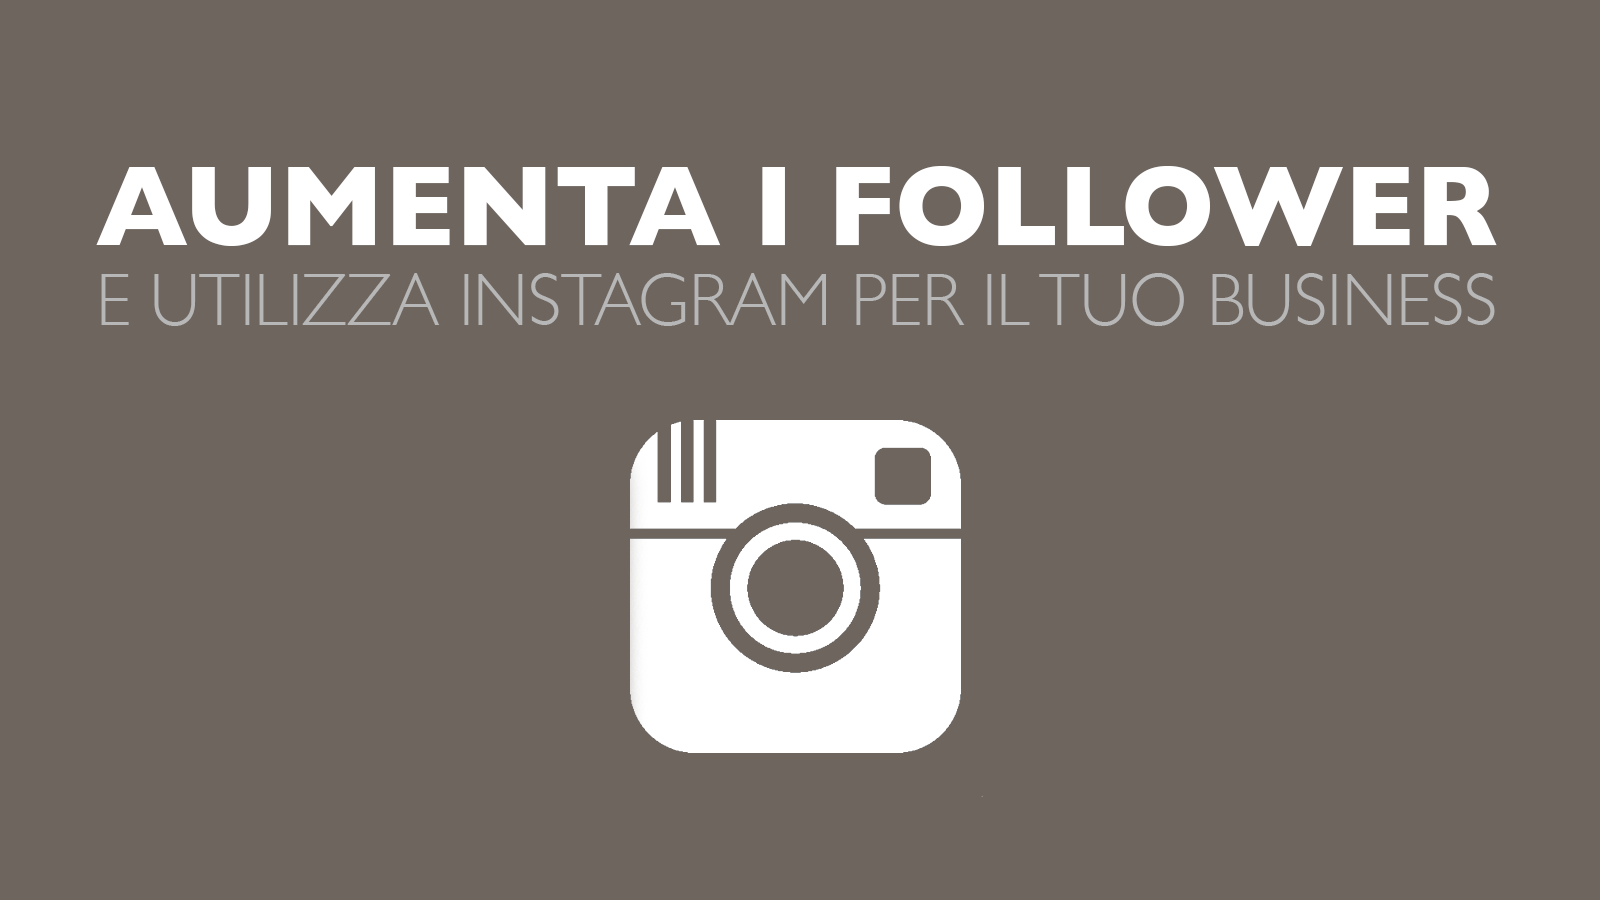 Come aumentare followers su Instagram